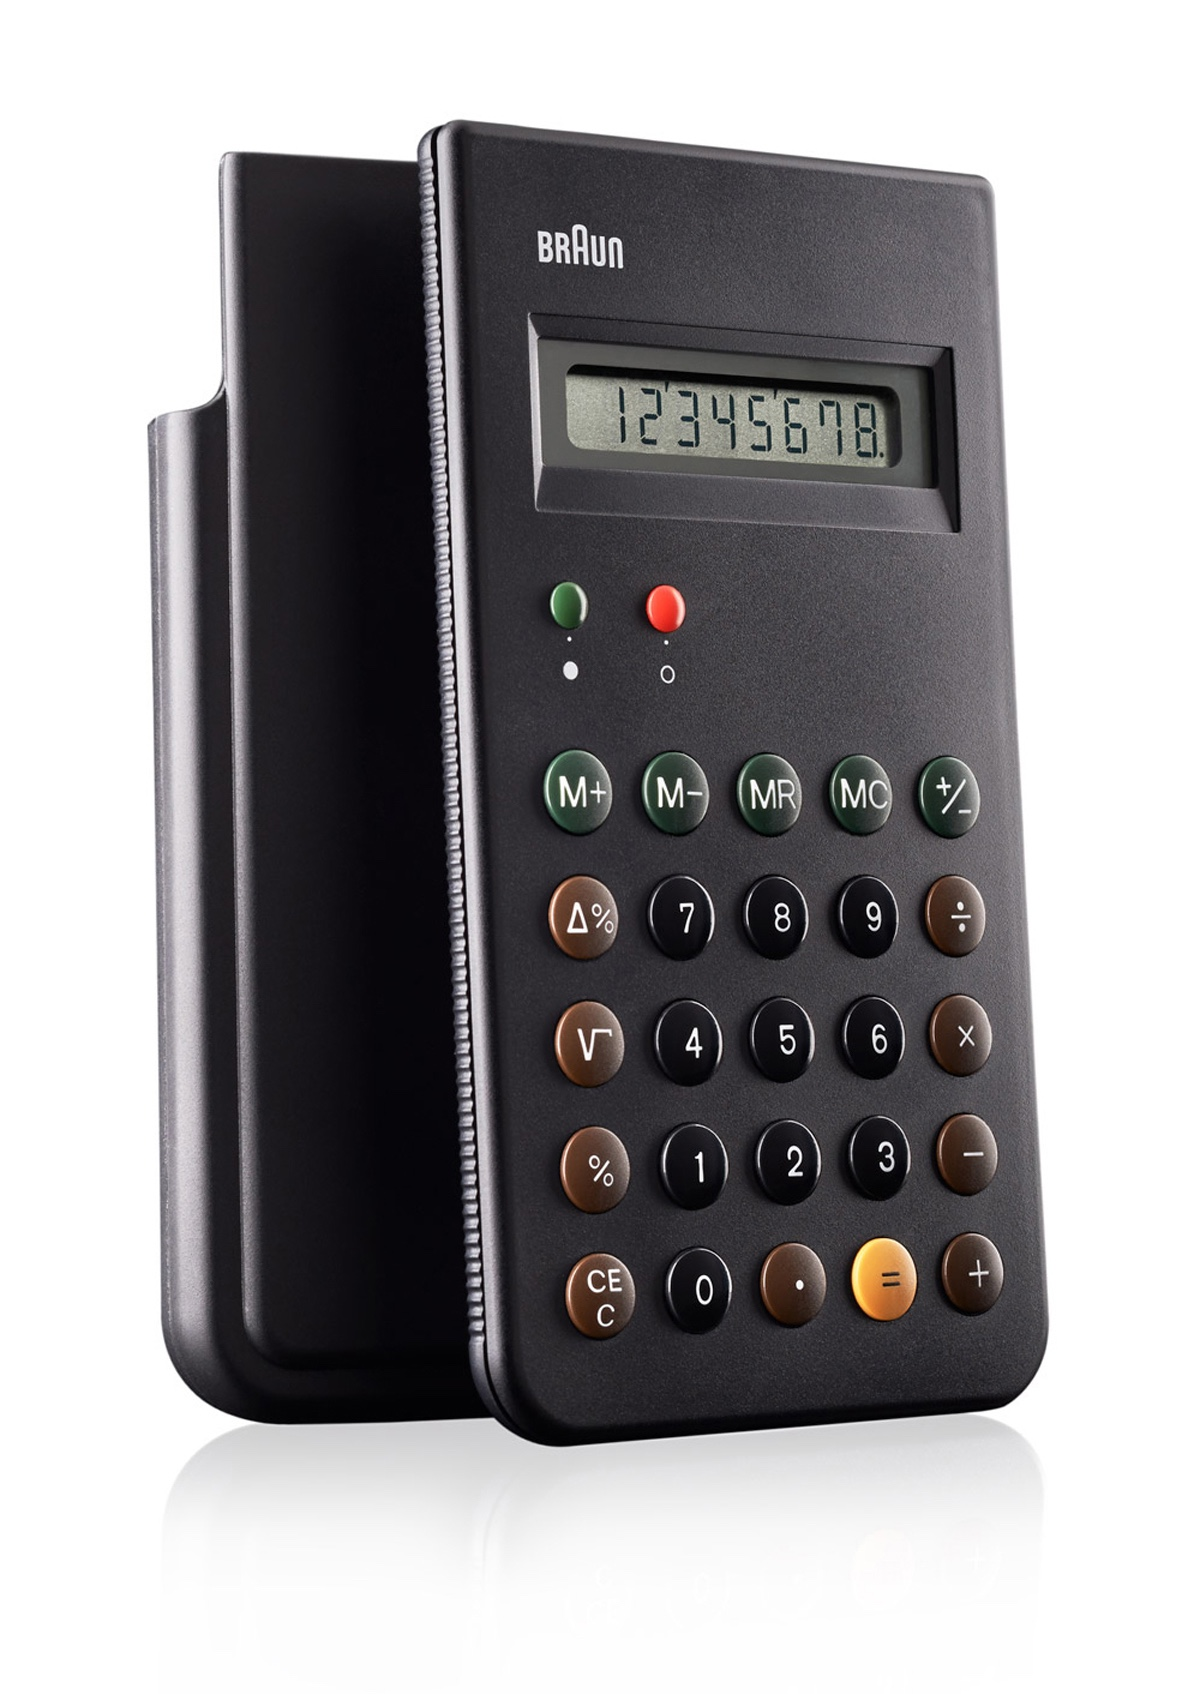 Braun ET66 calculator. Image via Braun.